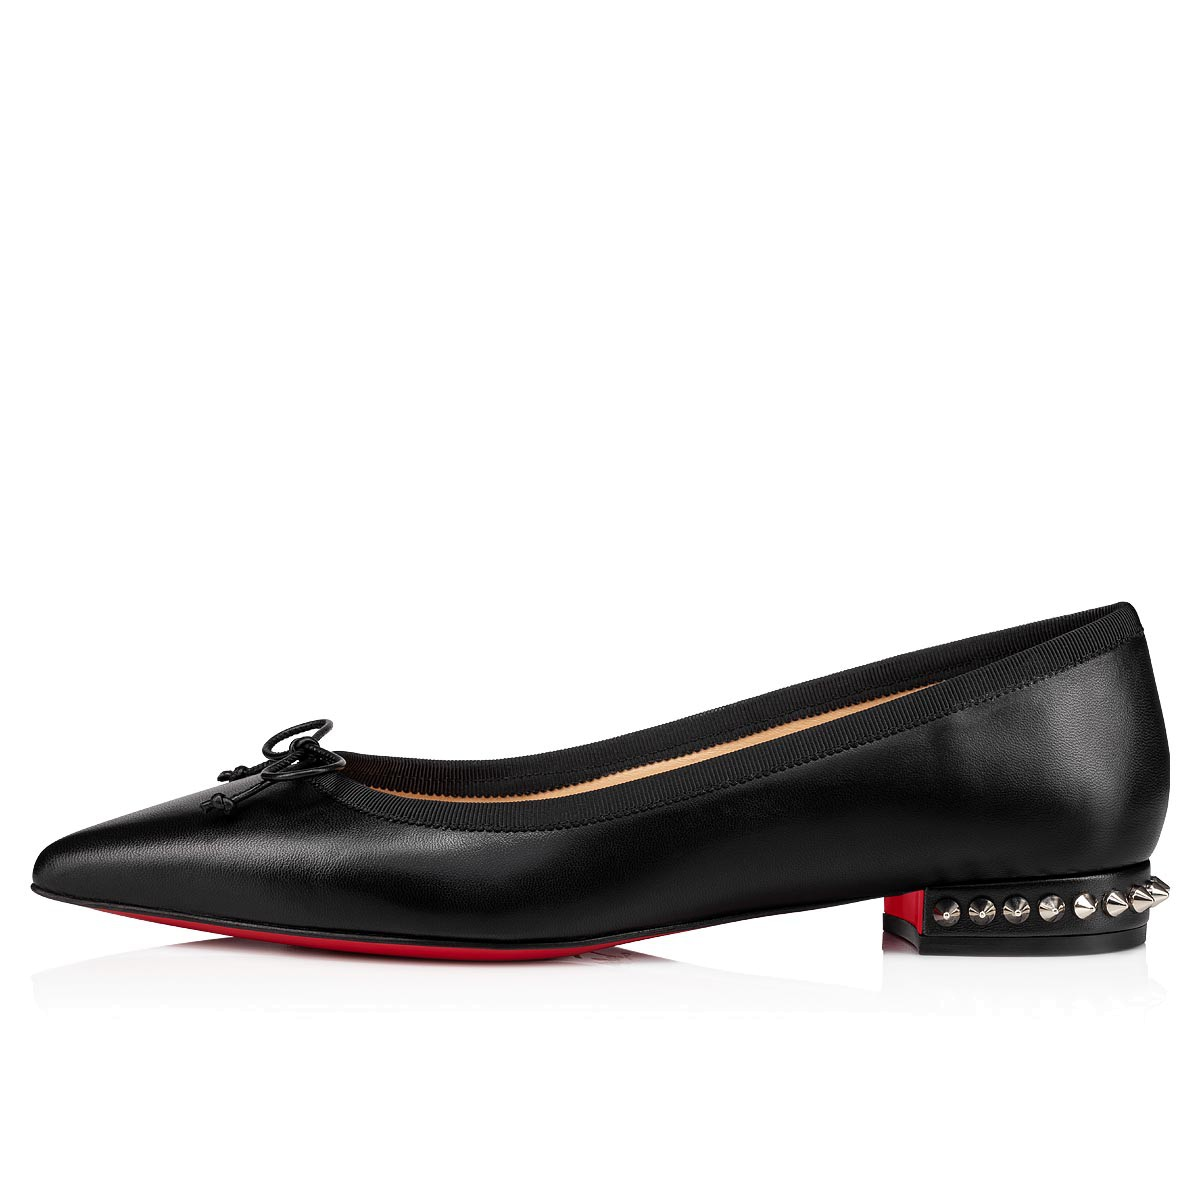 Shoes - Hall Flat - Christian Louboutin